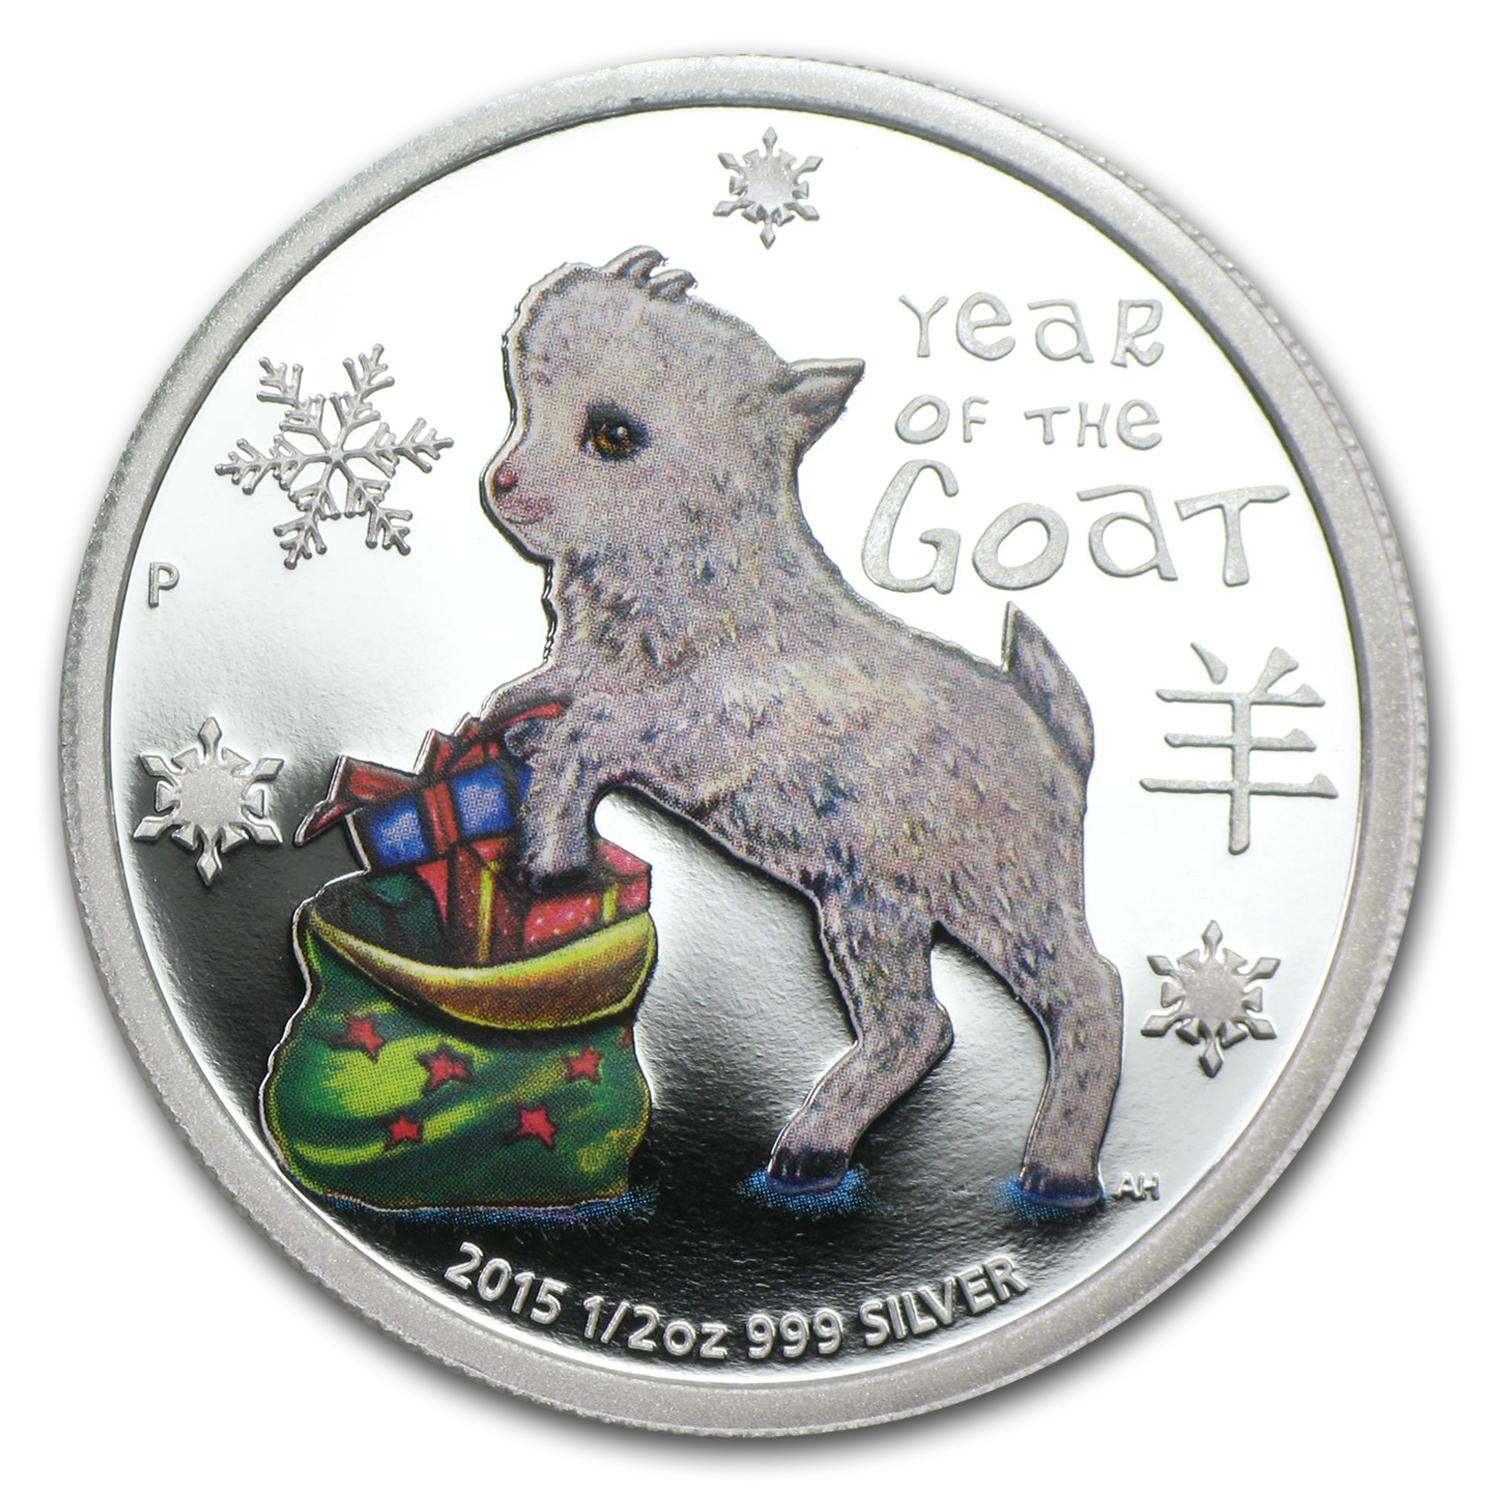 2015 Tuvalu 1/2 oz Silver Lunar Baby Goat Proof (Colorized)